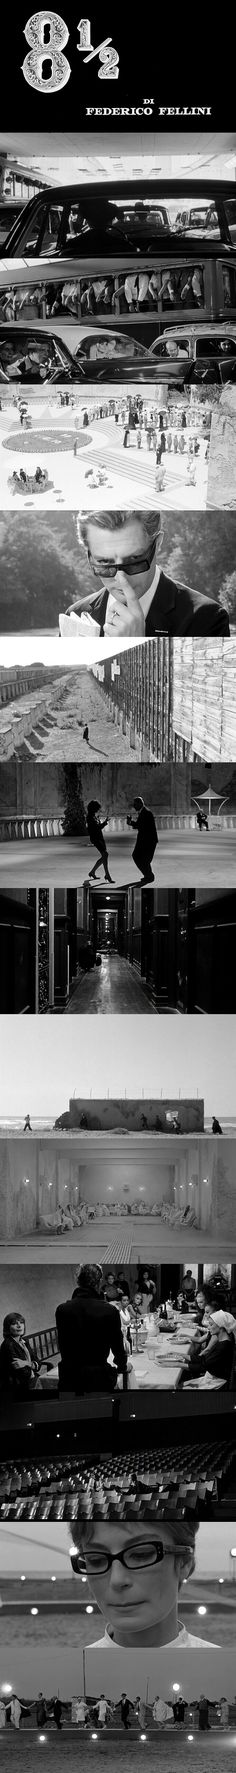 8 1/2 (1963) Directed by Federico Fellini. Cinematography by Gianni Di Venanzo.